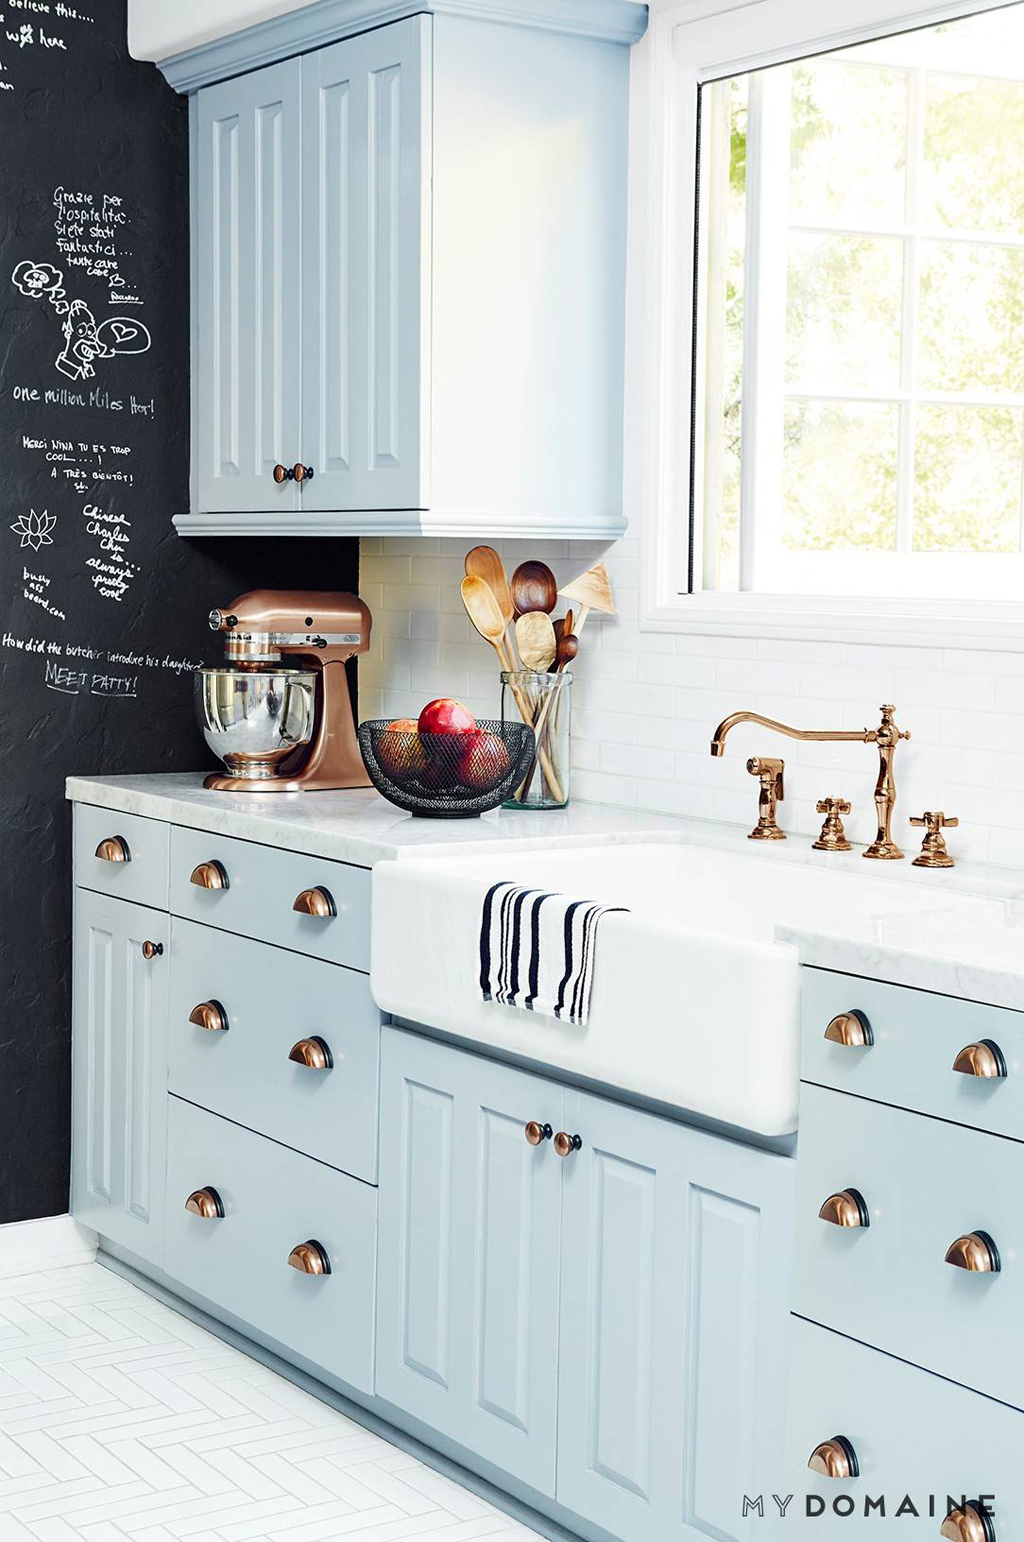 Over White Kitchens? Check Out These Colorful Cabinets - MBS Interiors